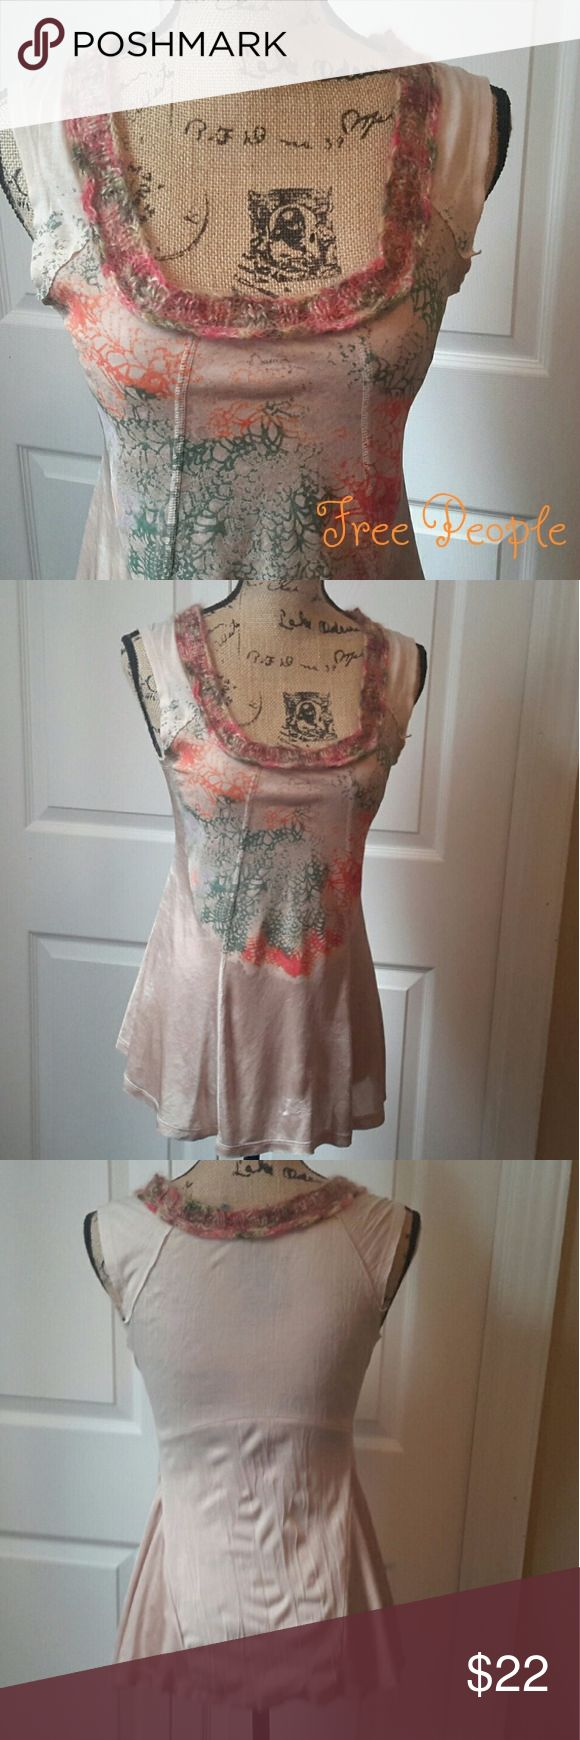 Free People Cream Crochet Tank Beautiful addition to your summer wardrobe!! Free People cream (dark cream almost tan) tank top with green, pink & orange web design on front with crocheted neckline. In overall good used condition with normal wash wear except picks and pulls near hem line (see photos #5 & 6) Measurements in photos Open to offers! Free People Tops Tank Tops